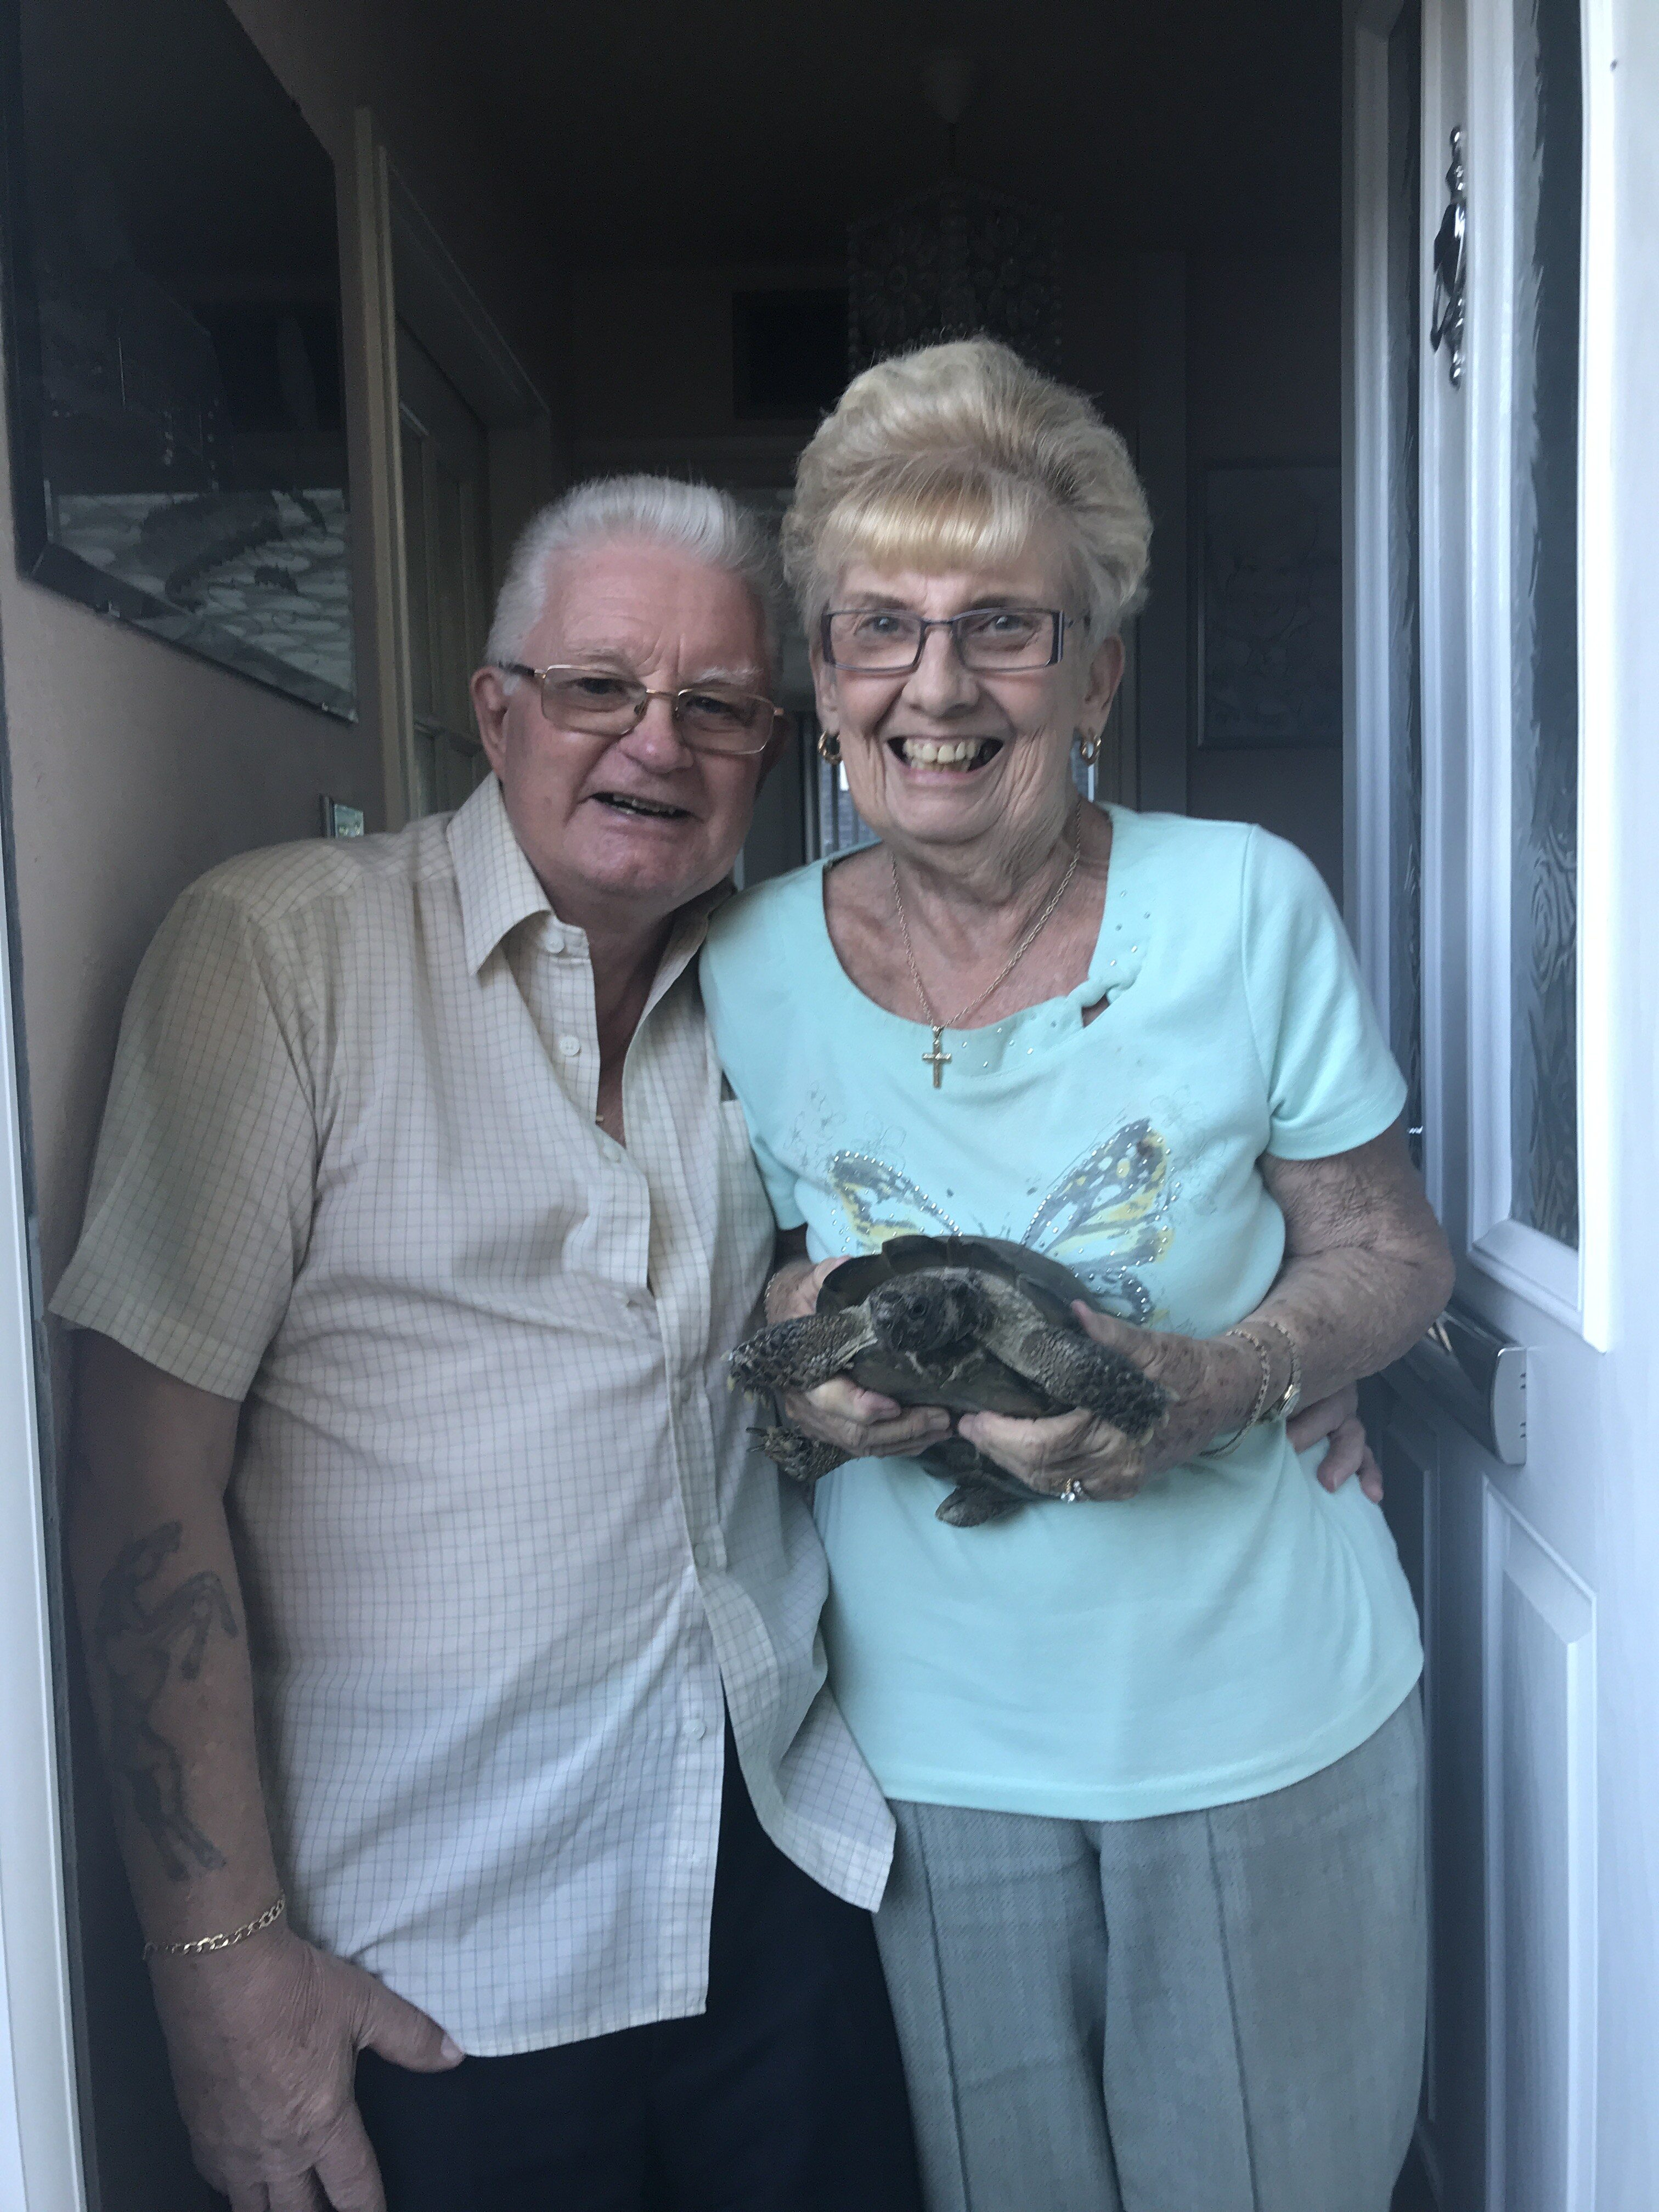 David and Sylvia Clouder with their tortoise, Tommy